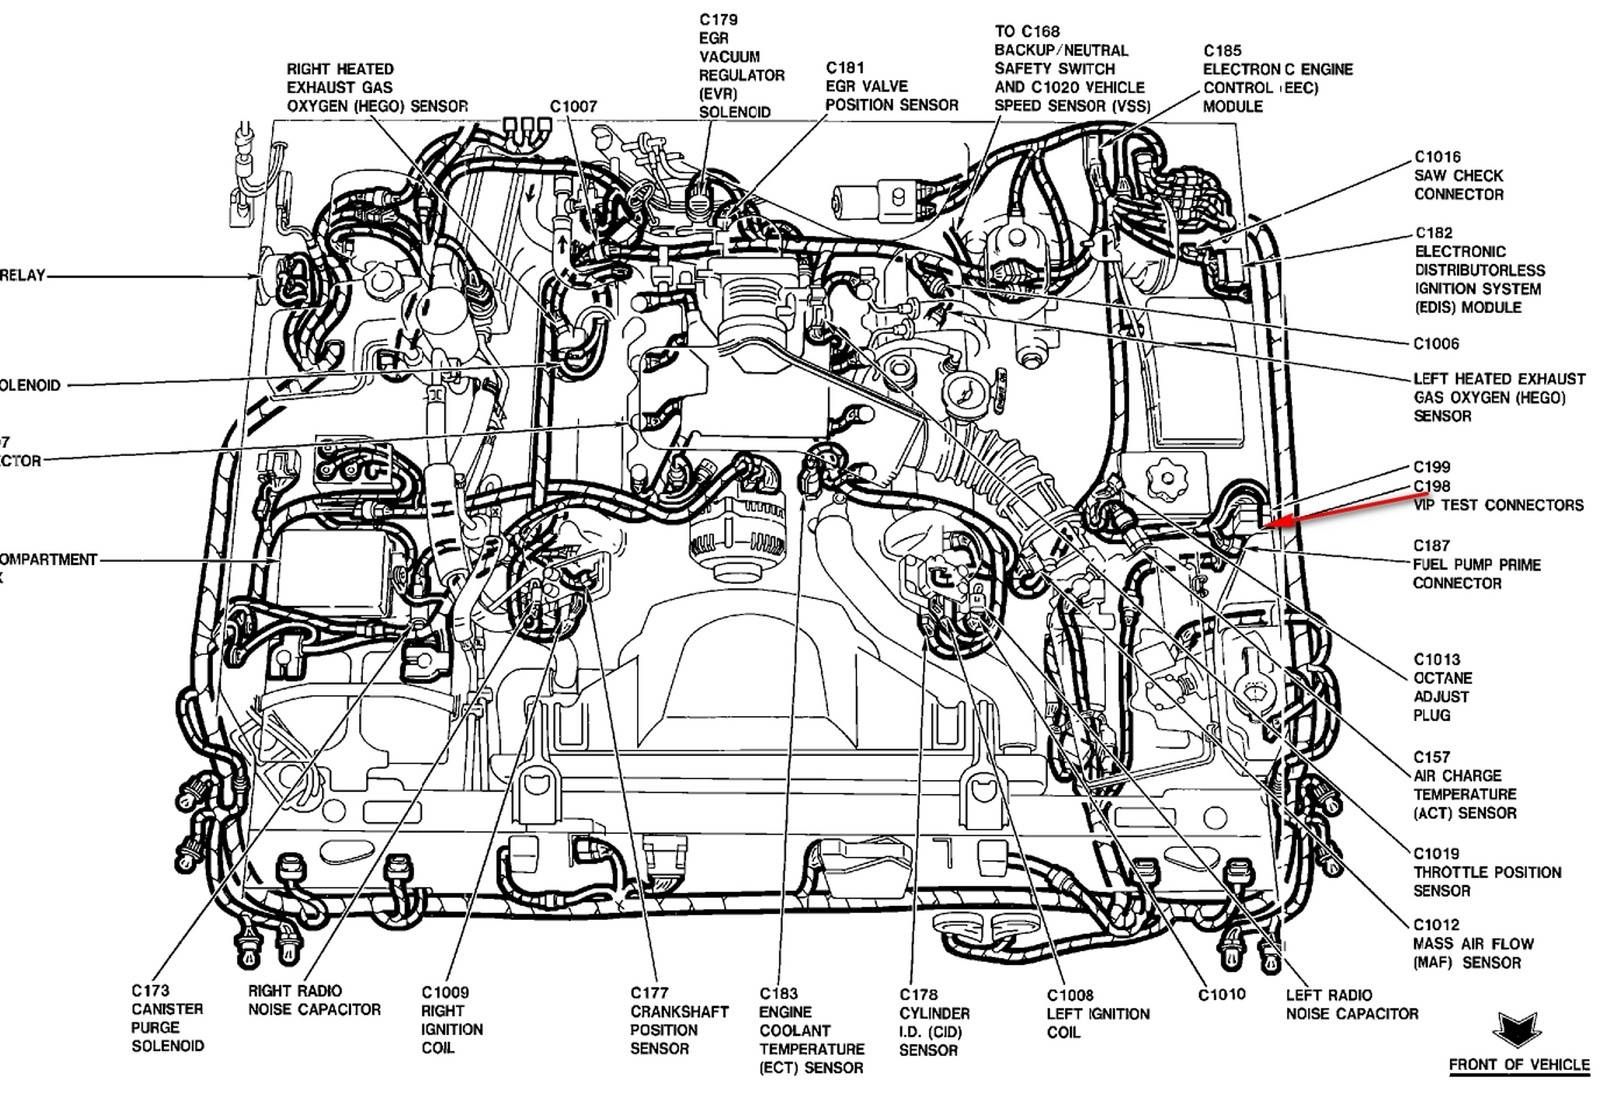 Mercury 4 6 Liter Engine Diagram - Wiring Liry Diagram Experts on 3.1 liter engine diagram, 5.4 triton cooling system diagram, ford expedition cylinder diagram, ford f-150 vacuum hose diagram, ford 5.4 cooling diagram, 4.6 belt diagram, ford 4.6 timing chain diagram, 5.4l vacuum hose routing diagram, 5.7 liter chevy engine diagram, ford 4.6 engine head diagram, automatic transmission diagram, ford f-150 4.6 engine diagram, ford 4.6 vacuum hose diagram, lincoln 4.6 engine diagram, mercury 4.6 engine diagram, 97 ford 4.6 engine diagram, 1999 ford 4.6 engine diagram, 97 f150 vacuum hose diagram, ford 5.4 heater hose diagram, 5.4 triton timing chain diagram,